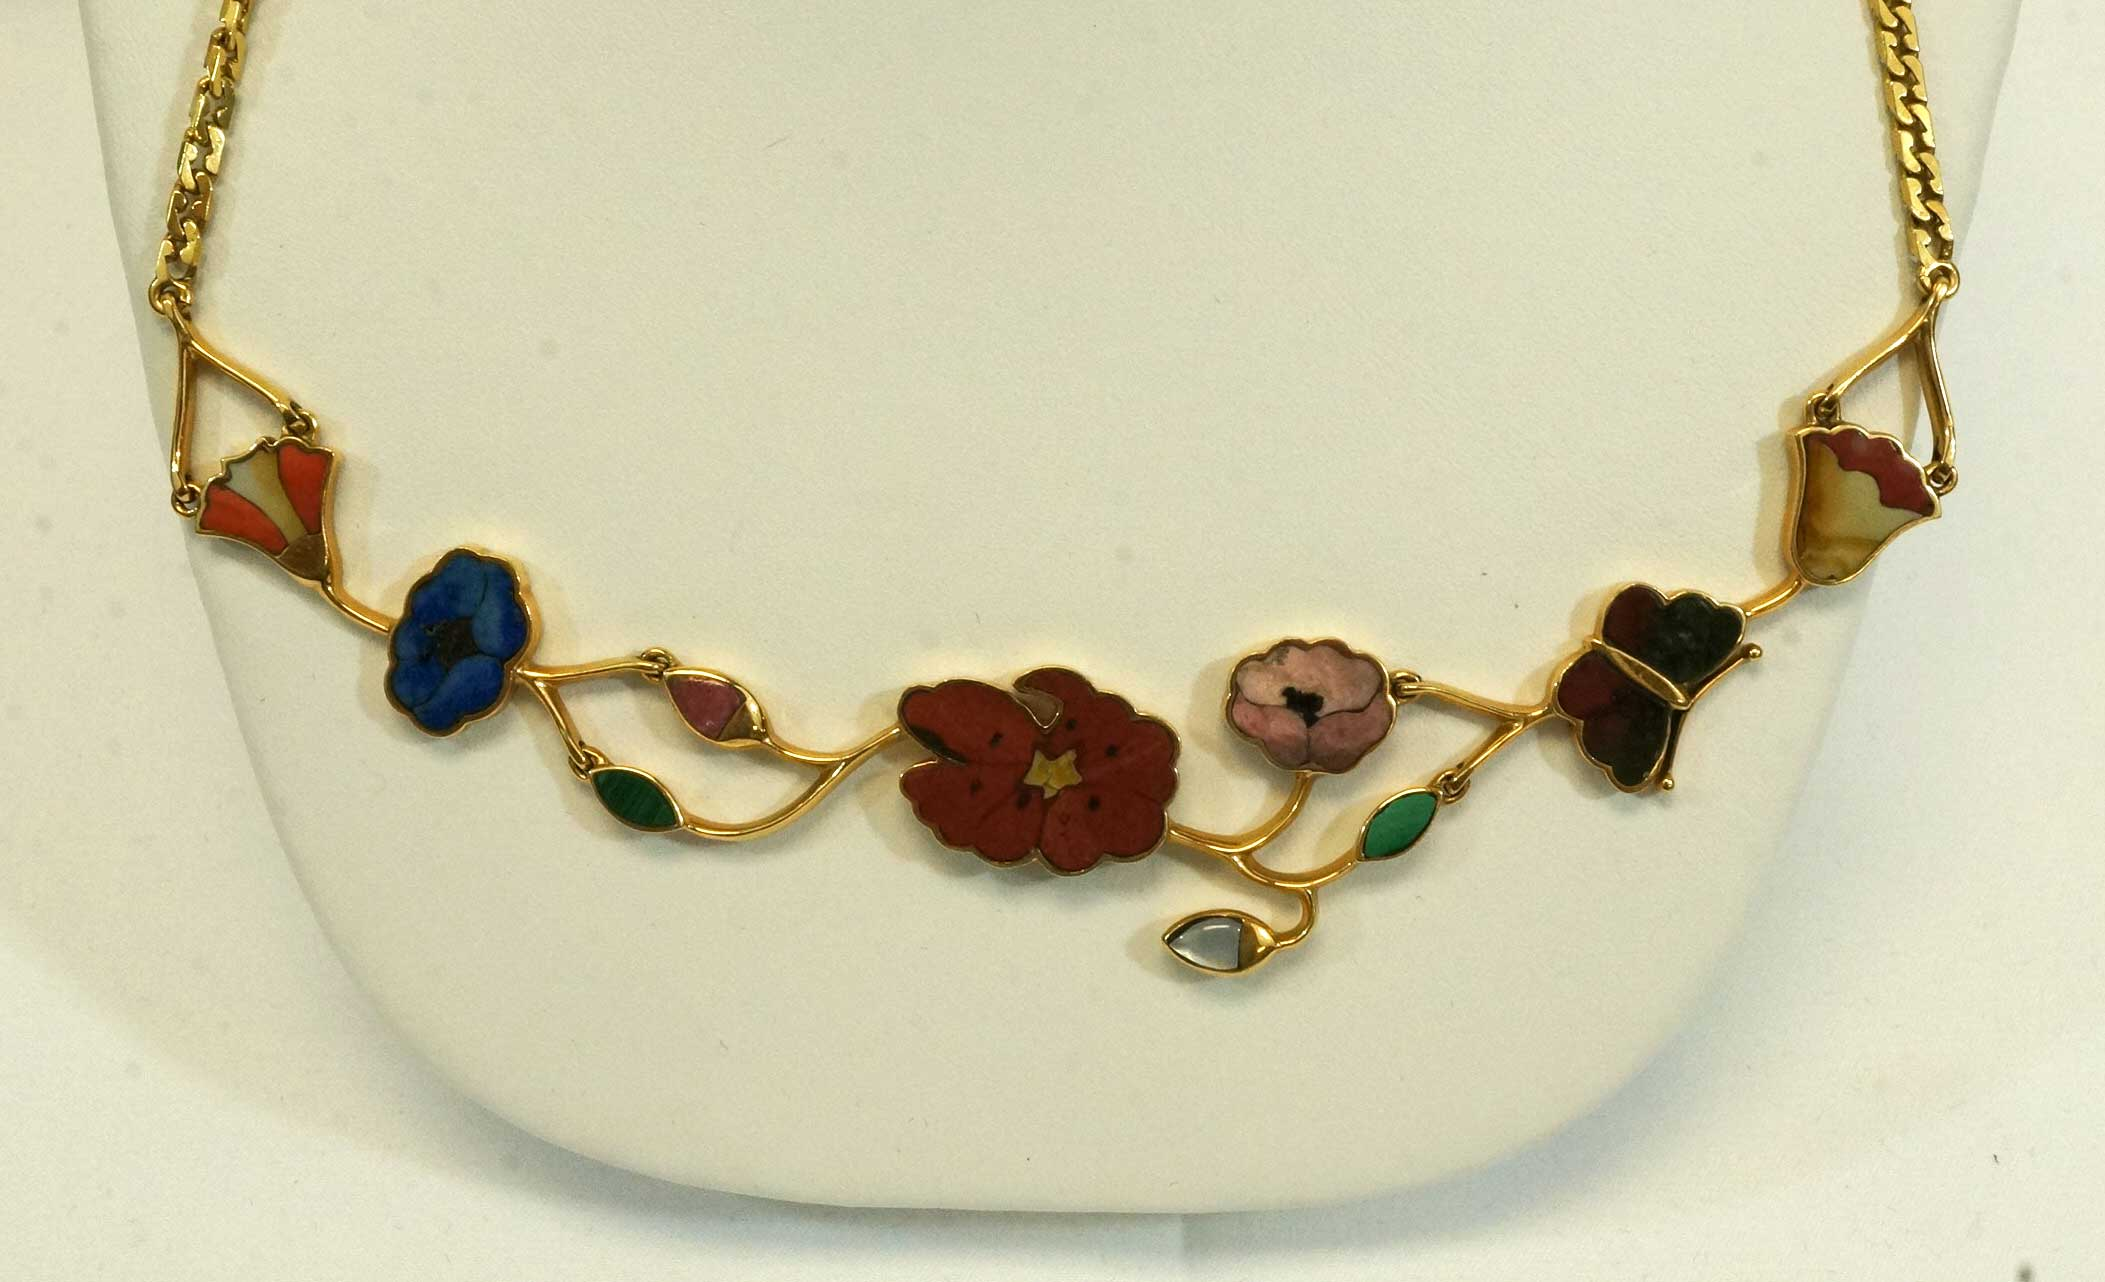 Gucci Italy 18K Gold Multi-Stone Necklace